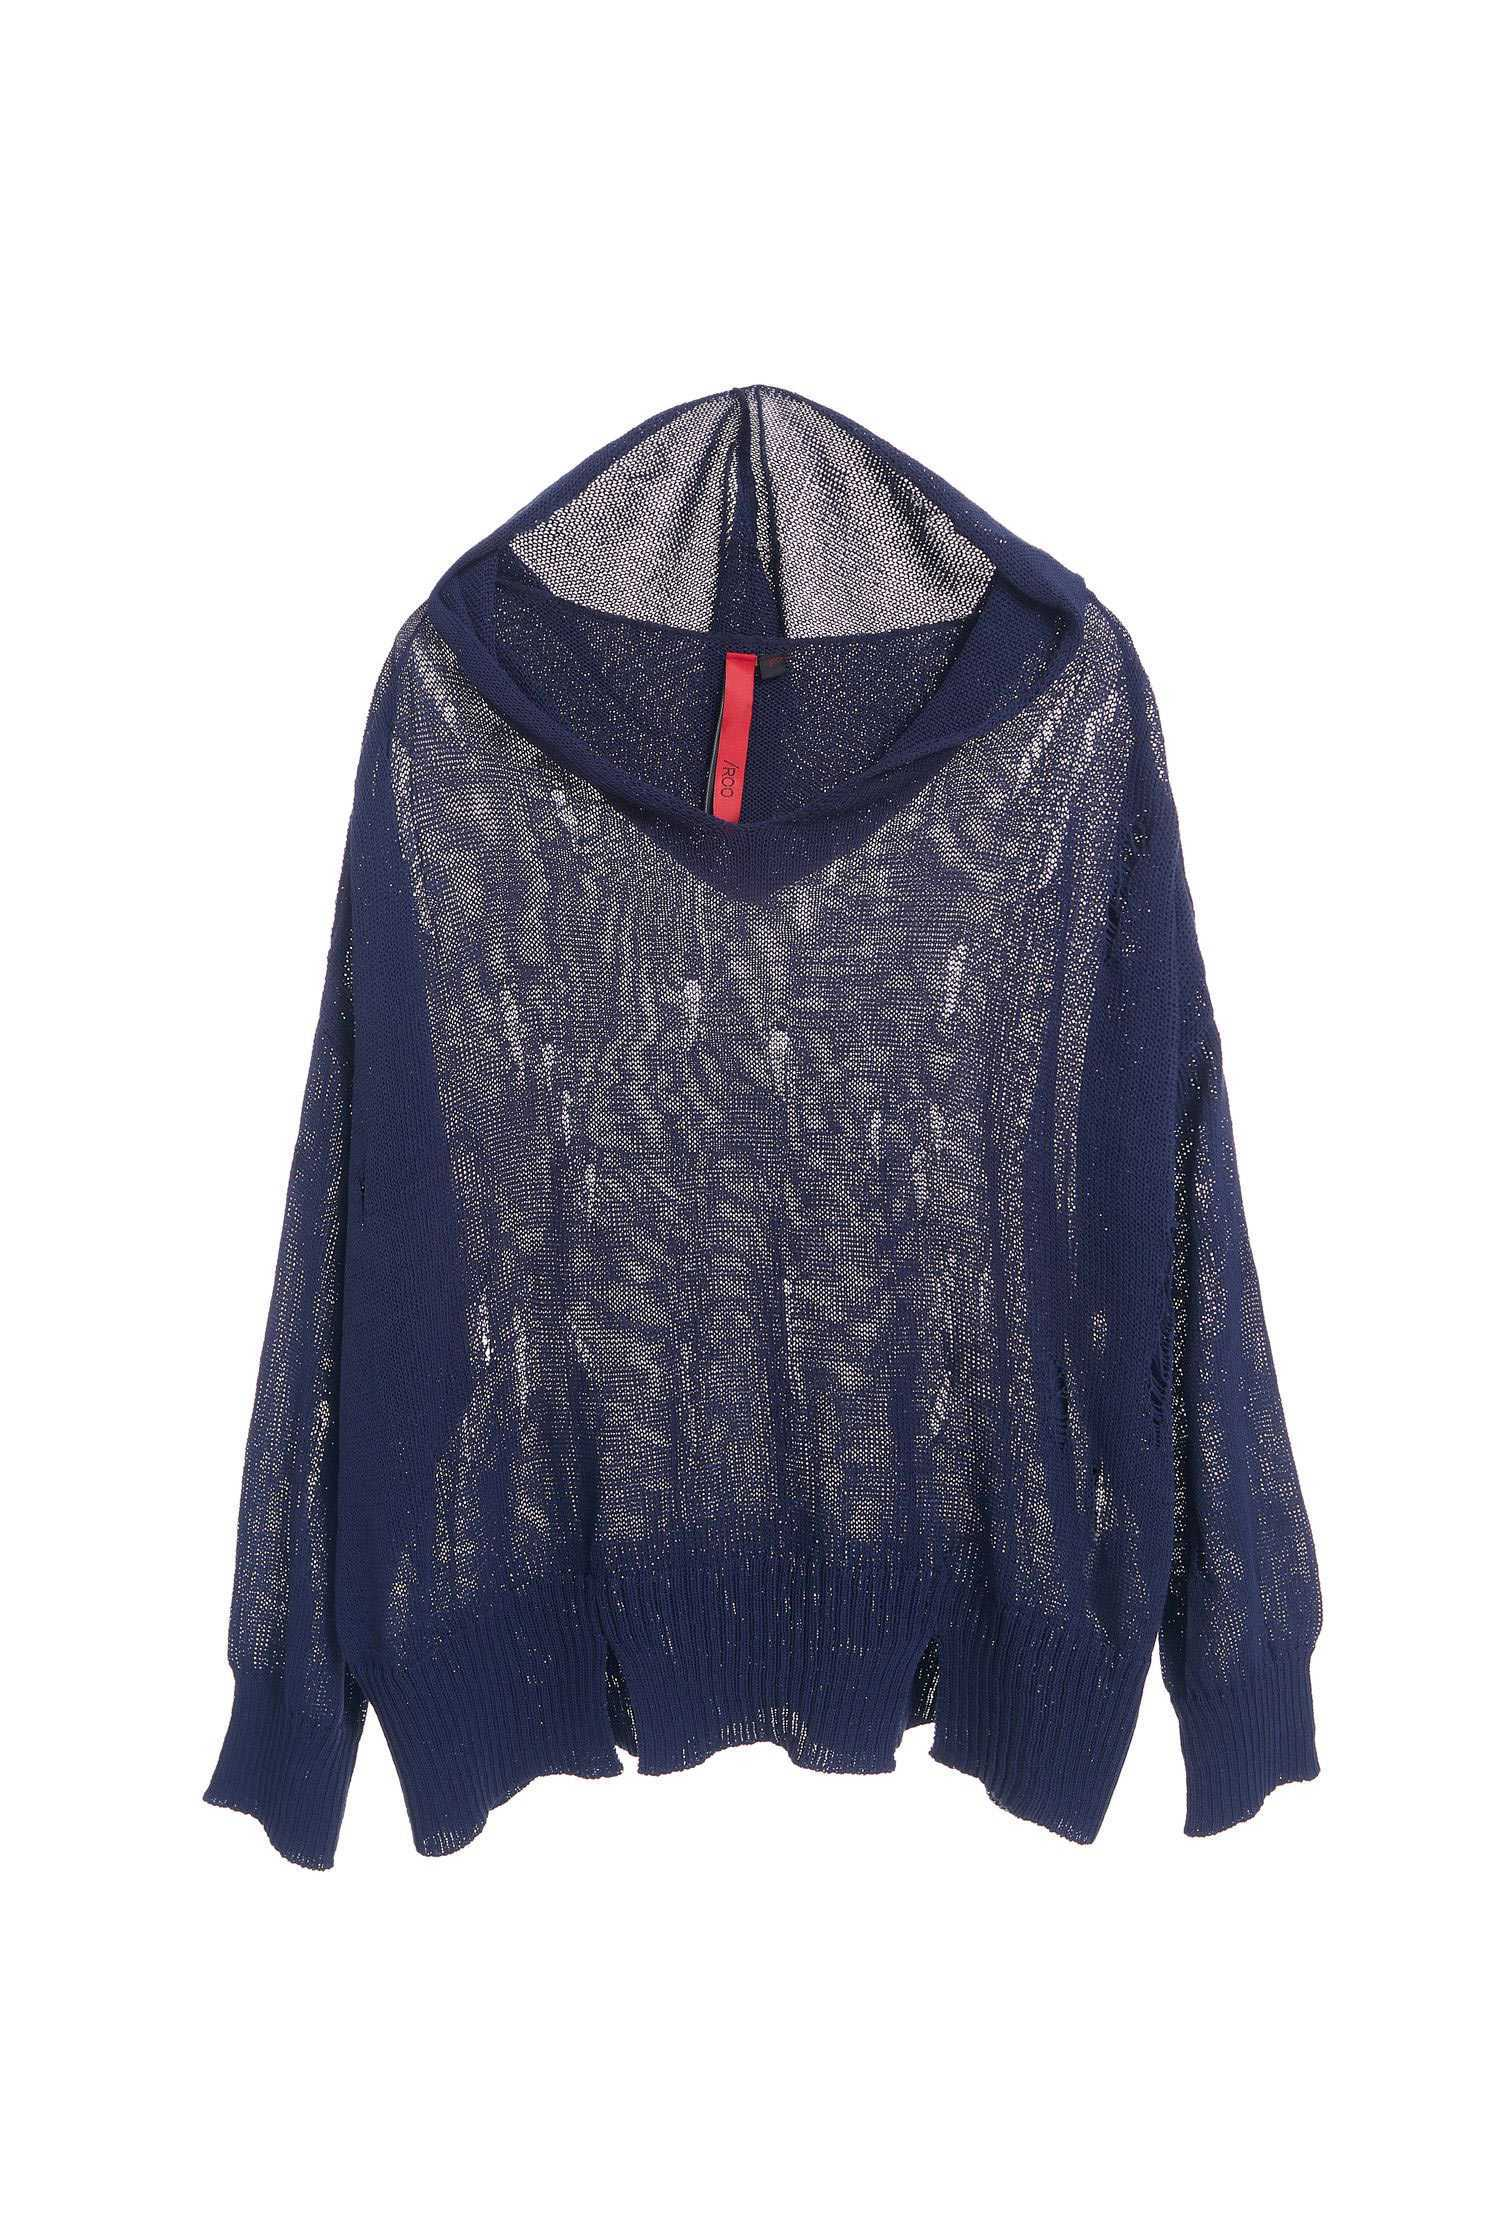 Hooded fashion long-sleeved top